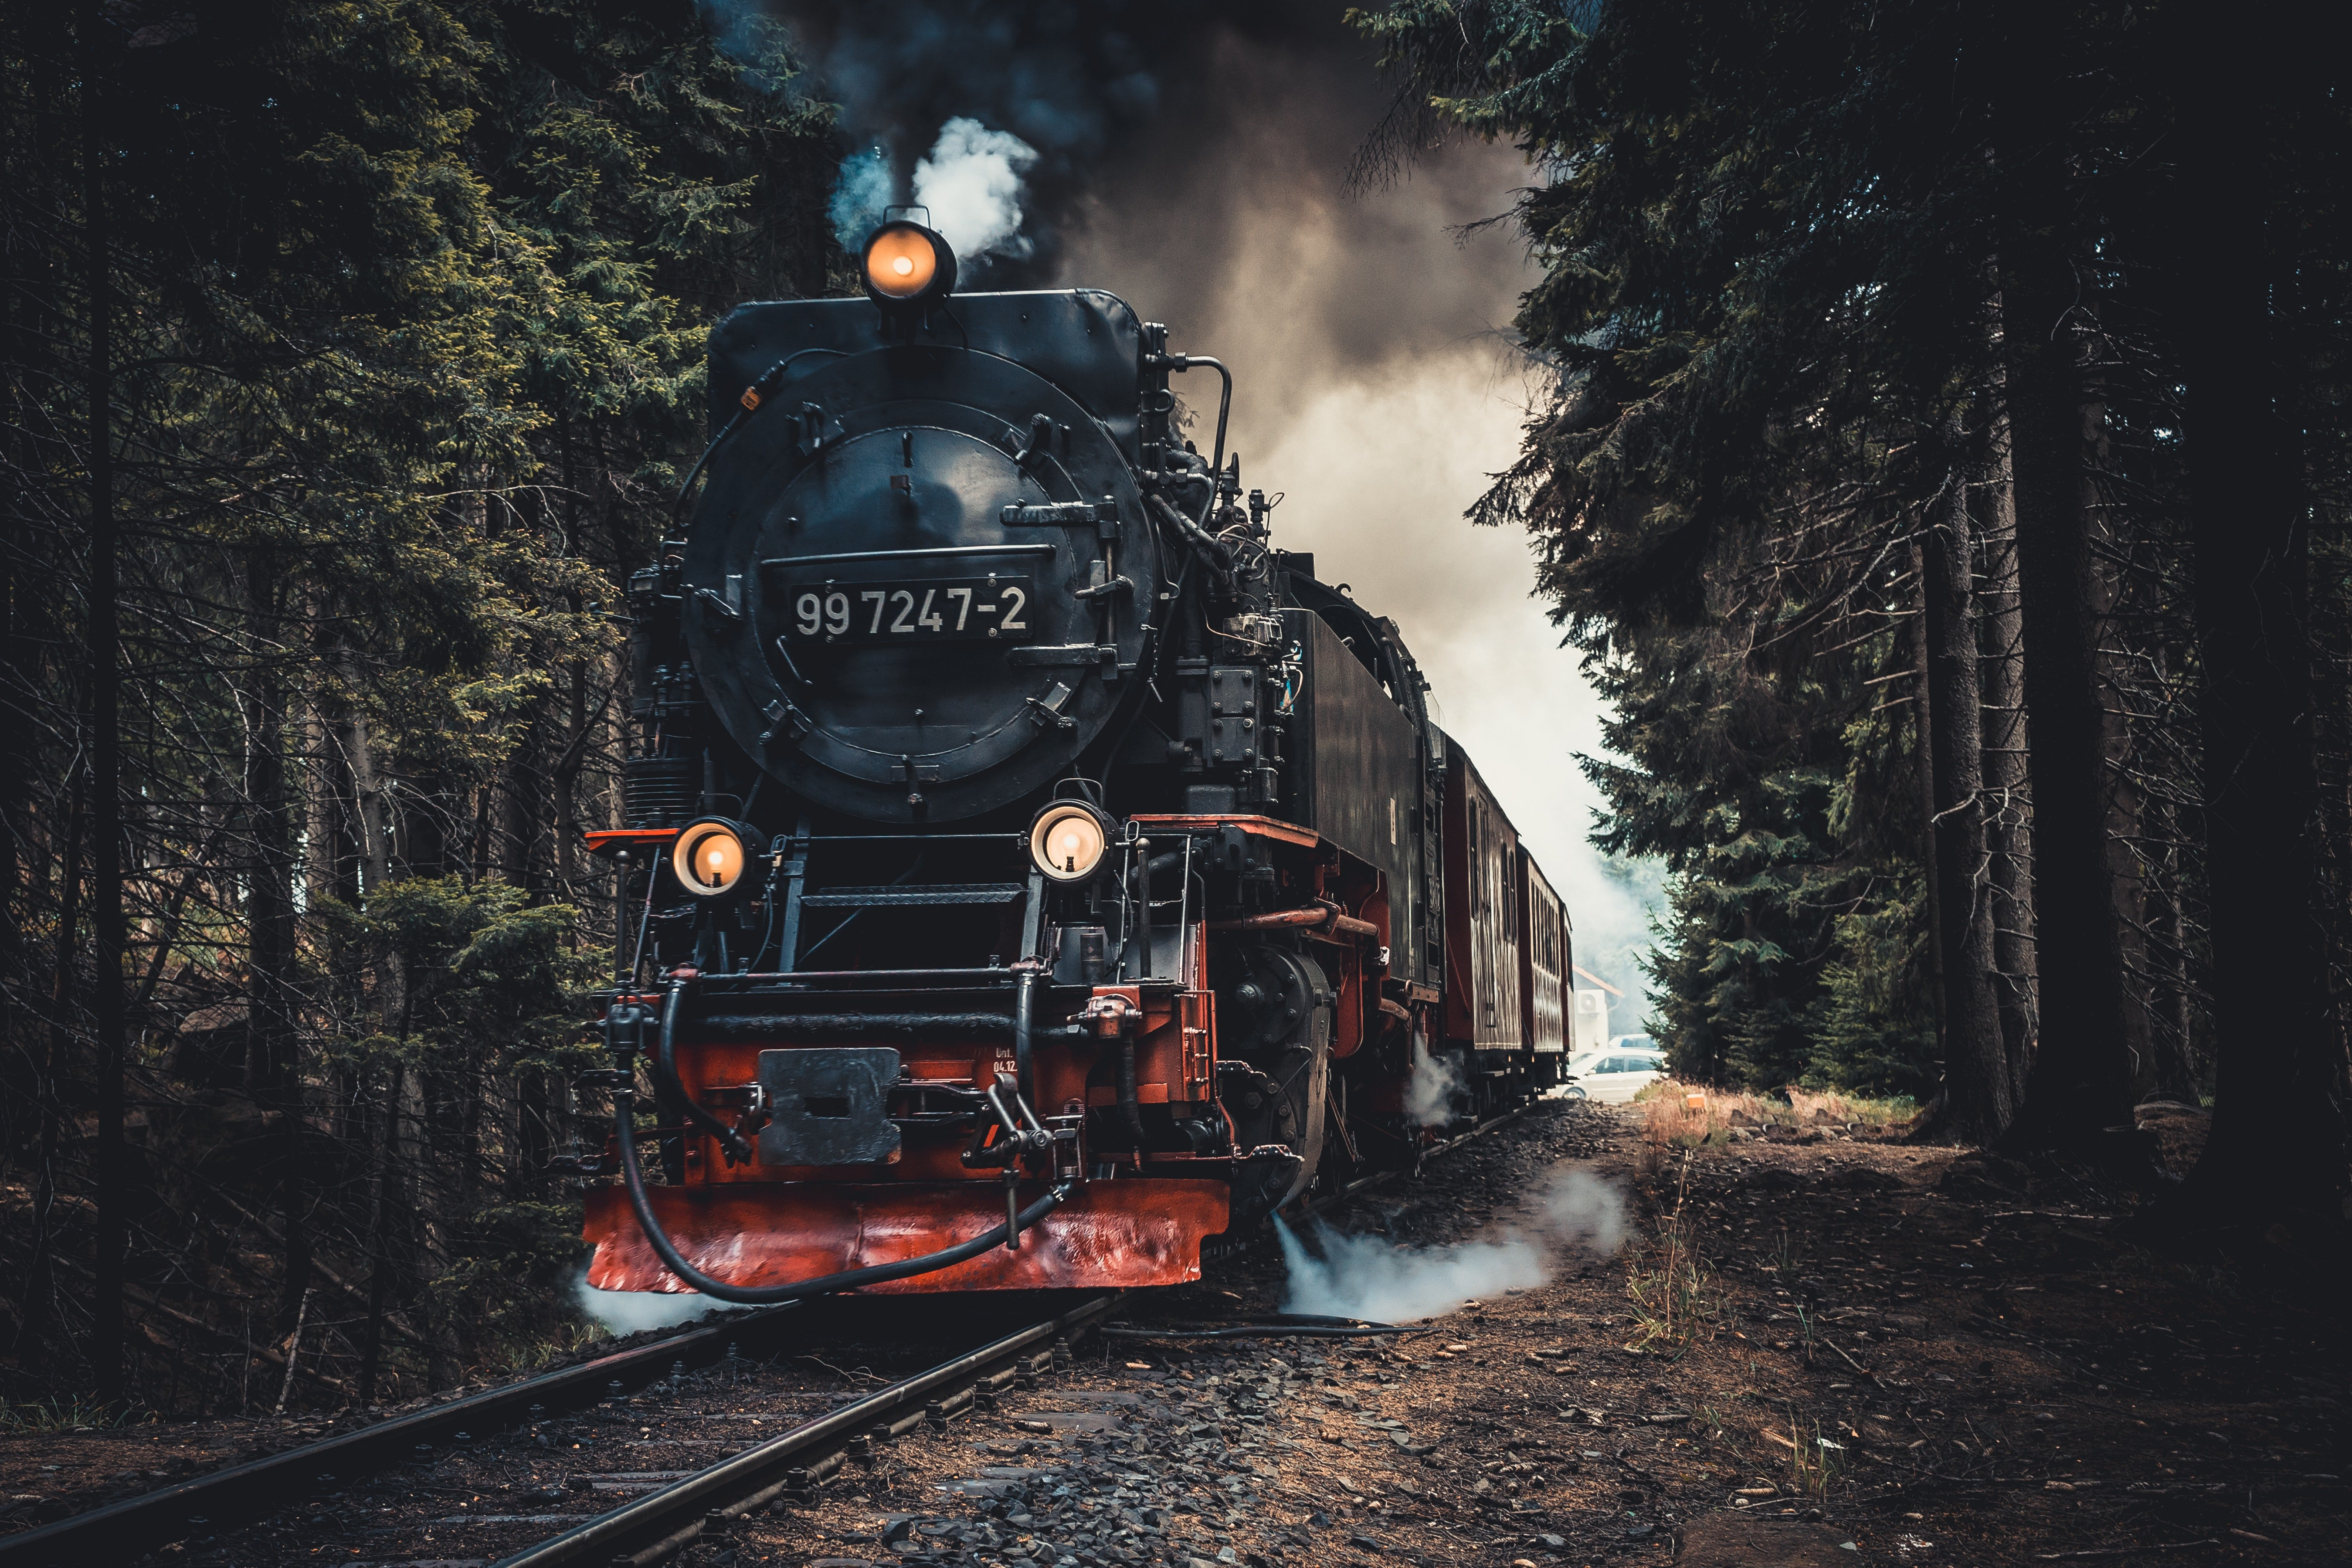 Pictured - A red and black train steam locomotive on a railway | Source: Pexels